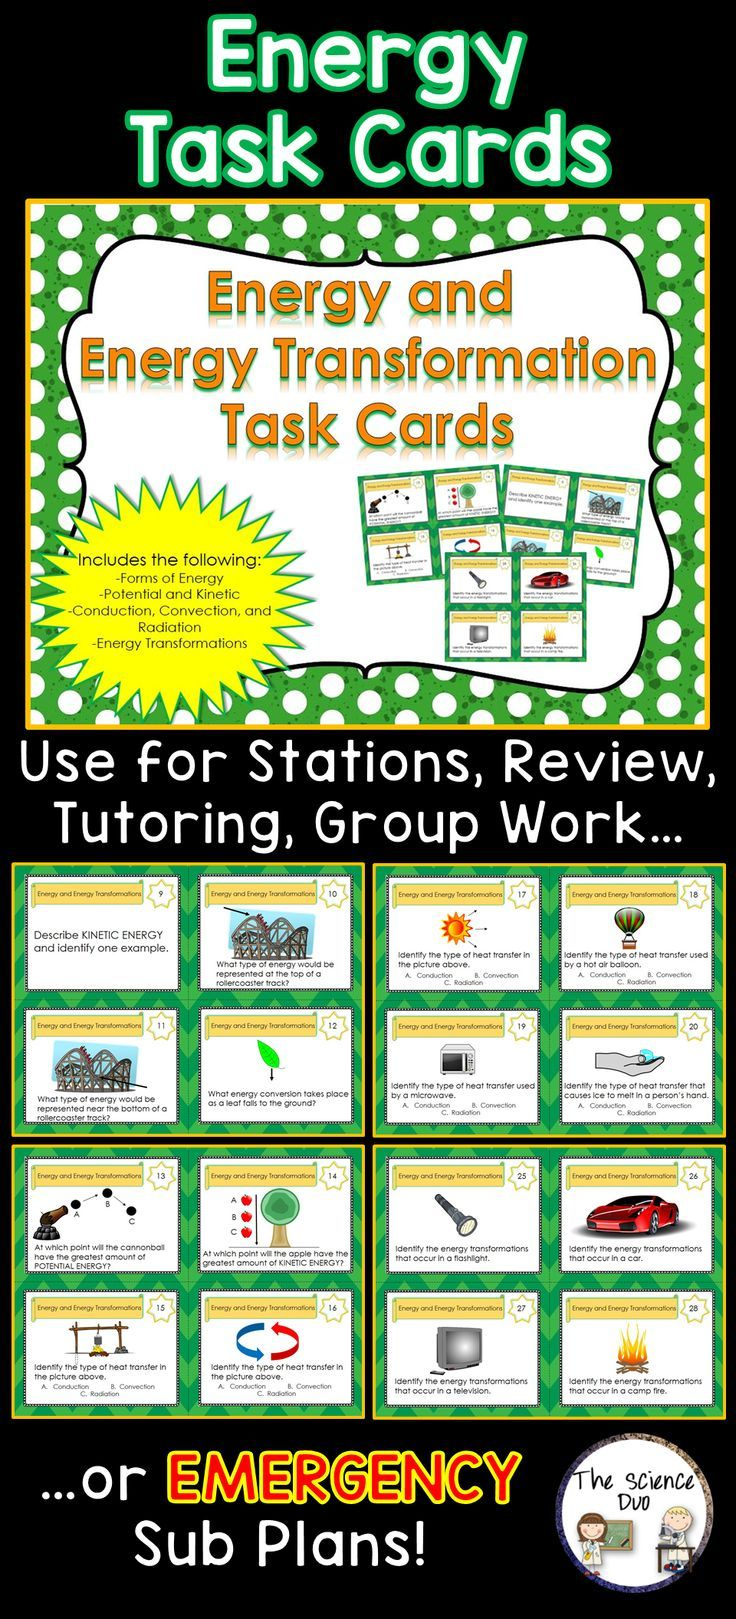 Worksheets Energy Transformation Worksheet the 25 best energy transformation ideas on pinterest electrical and task cards this interactive card set contains 8 pages